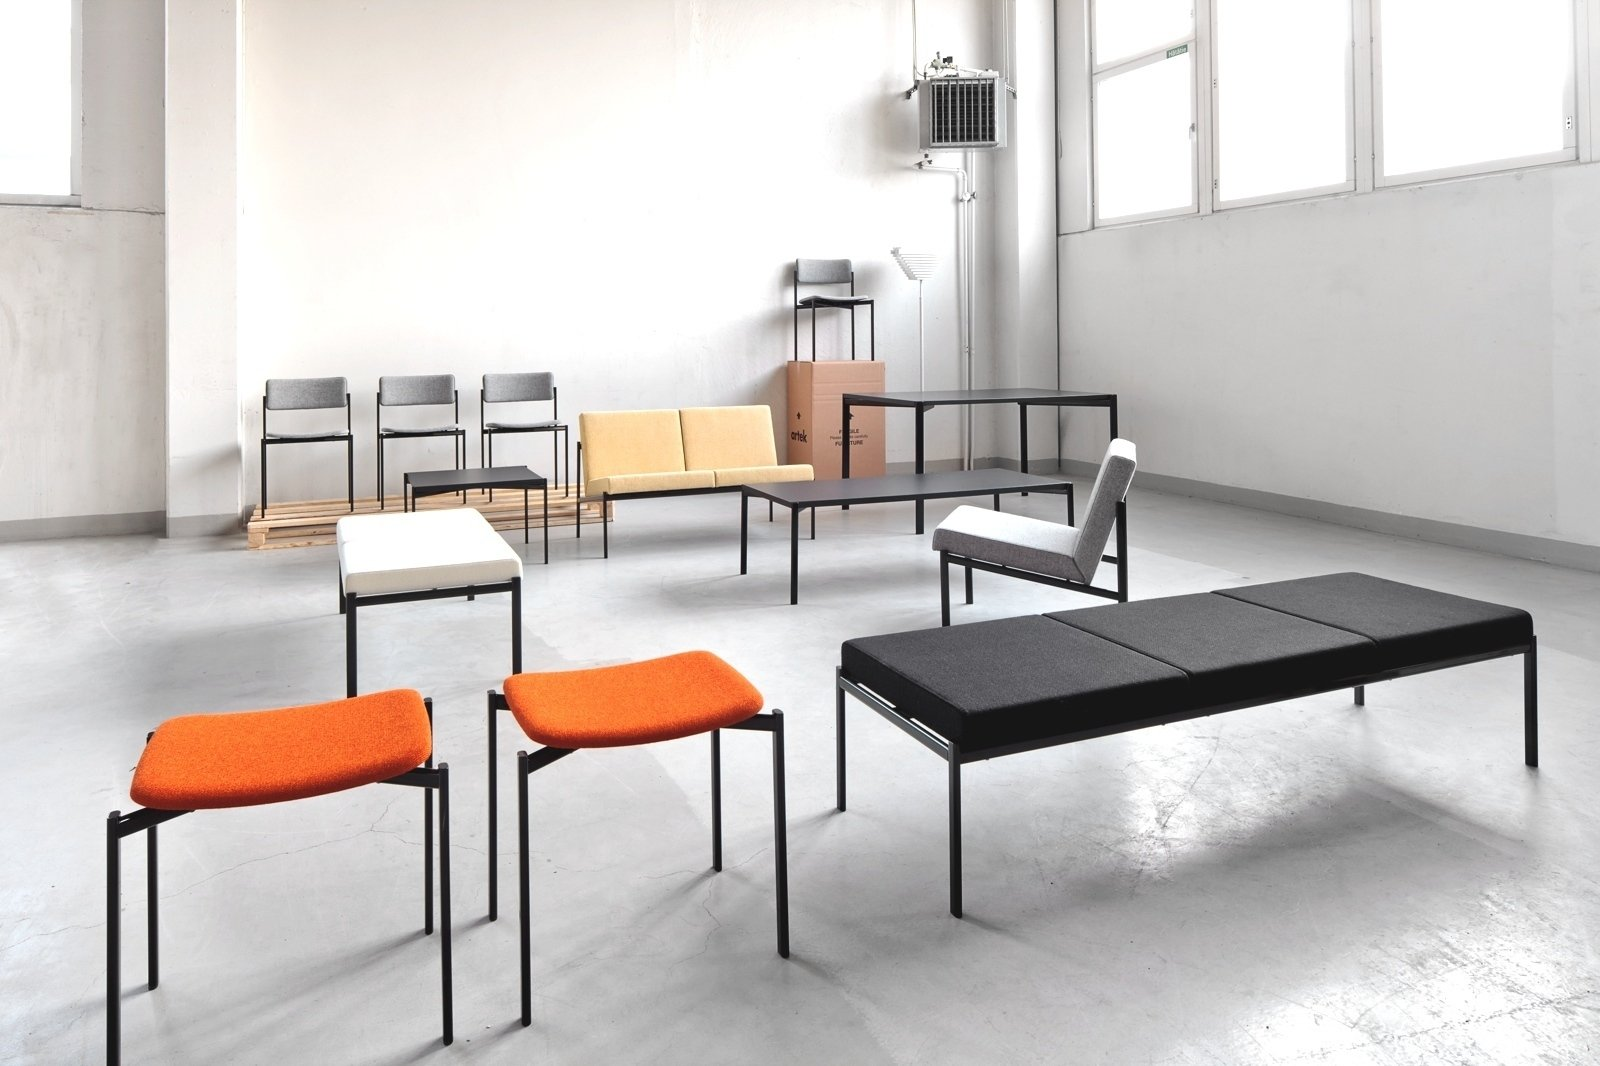 The Kiki series of chairs, tables, lounge chairs, benches, and sofas was designed by Tapiovaara in 1960. The oval steel tubing framework for the furniture is a departure from the bent plywood seen in the designer's earlier work. Artek reissued the line in 2013.  100+ Best Modern Seating Designs from Aalto Isn't the Only Finnish Modernist: Meet Ilmari Tapiovaara